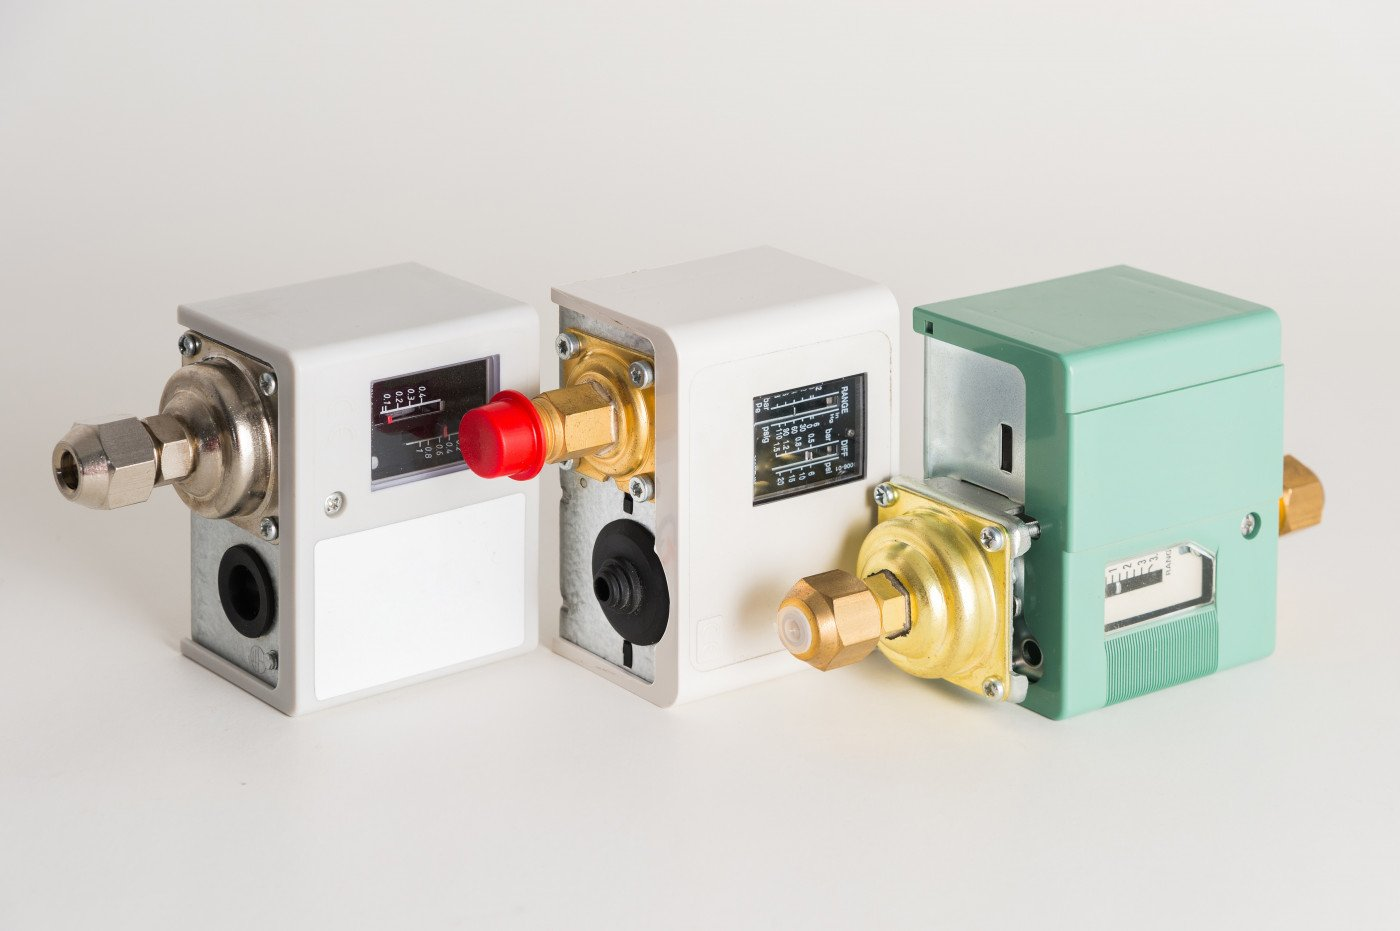 Mechanical Pressure Switch vs Electronic Pressure Switch